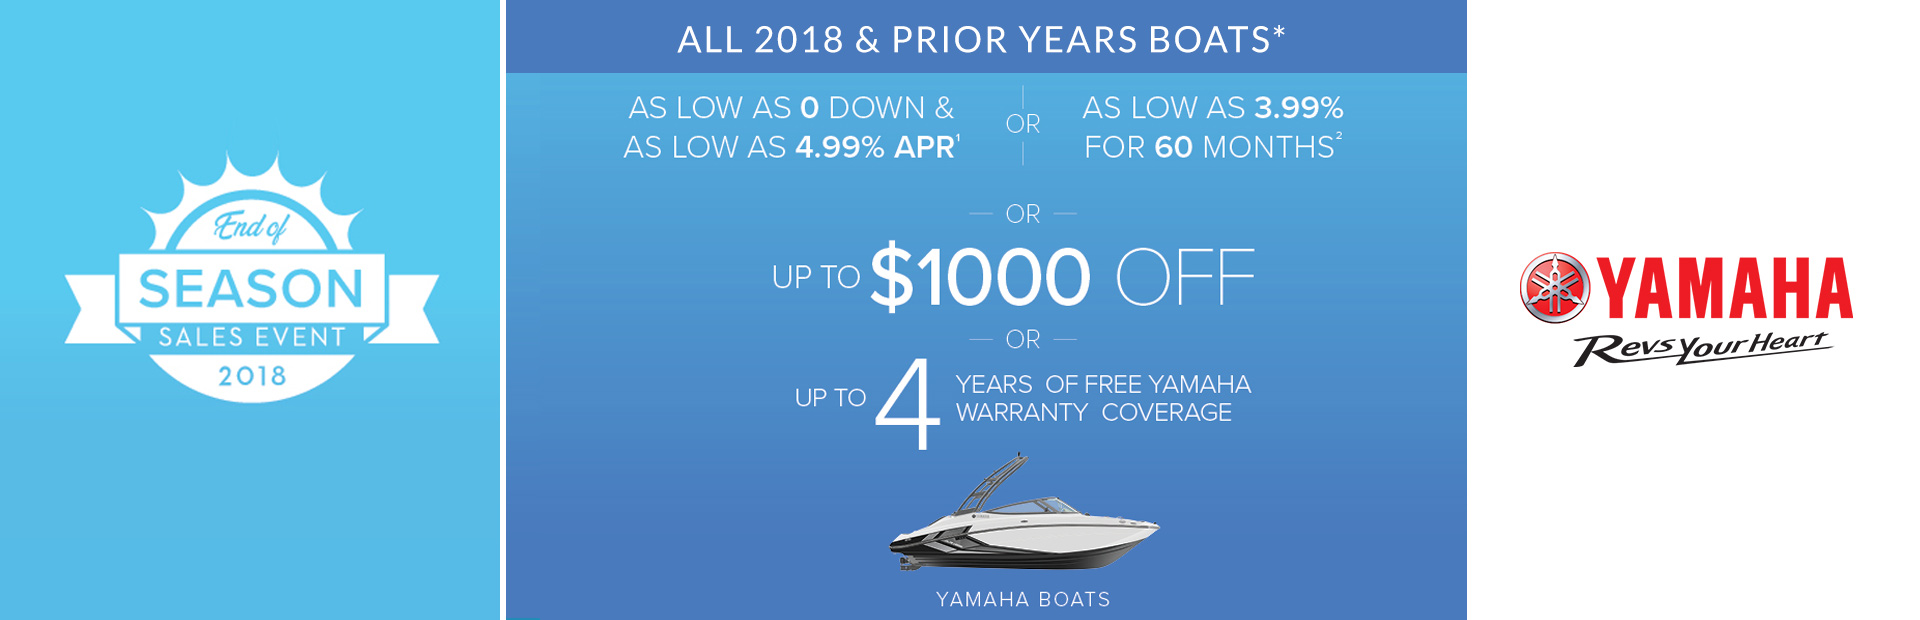 End of Season Sales Event - 2018 and Prior Years